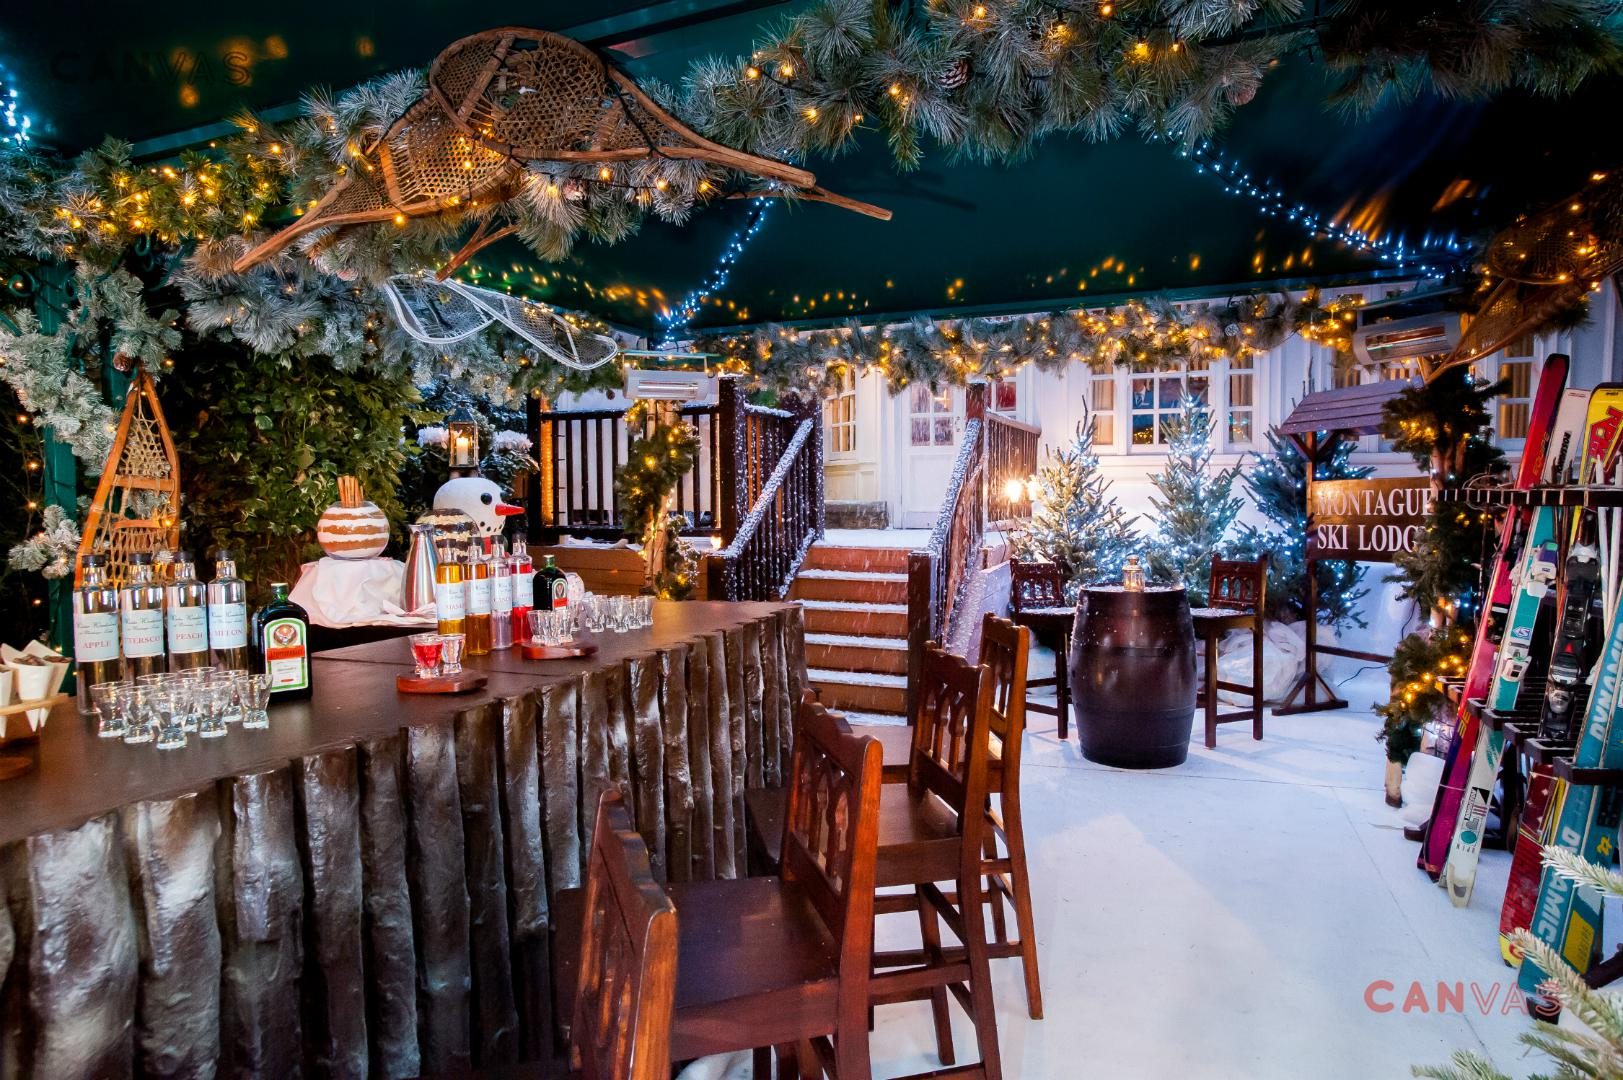 Get a taste of Apres Ski in this unique Winter pop up in central London